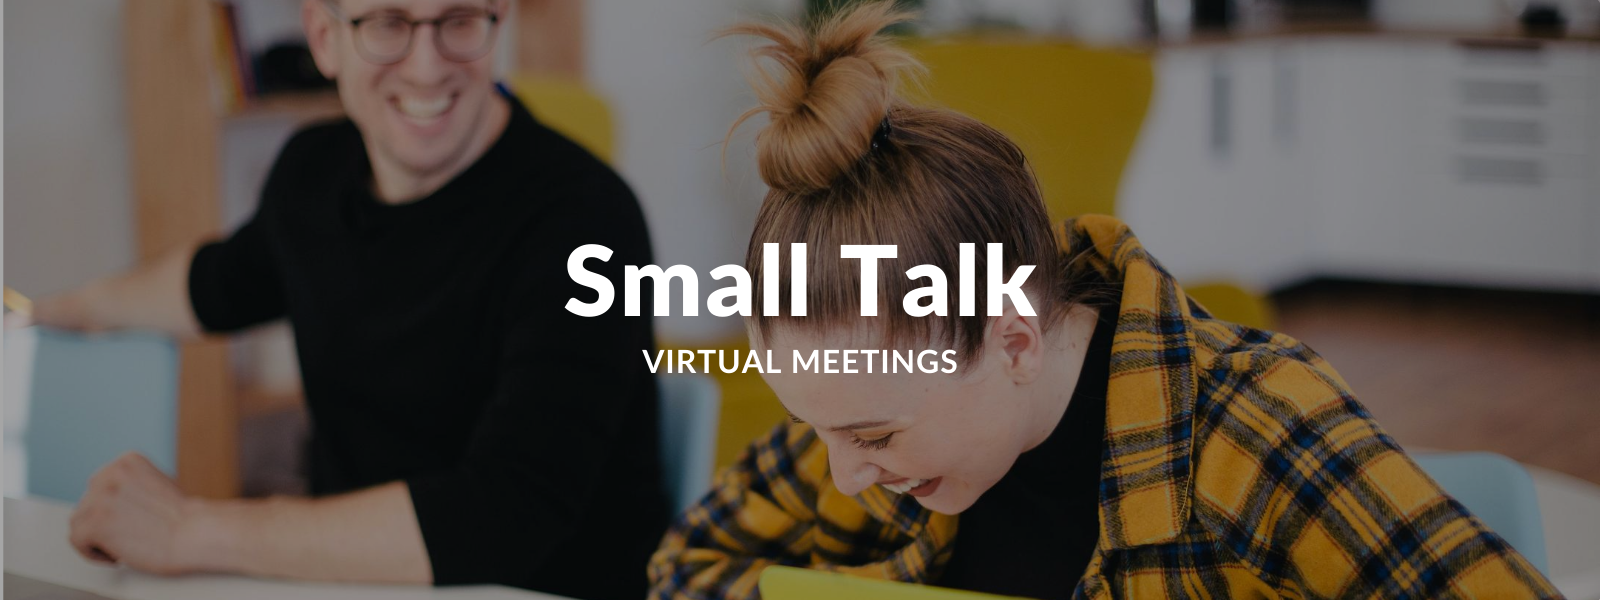 Small Talk for Virtual Meetings - Talaera Blog